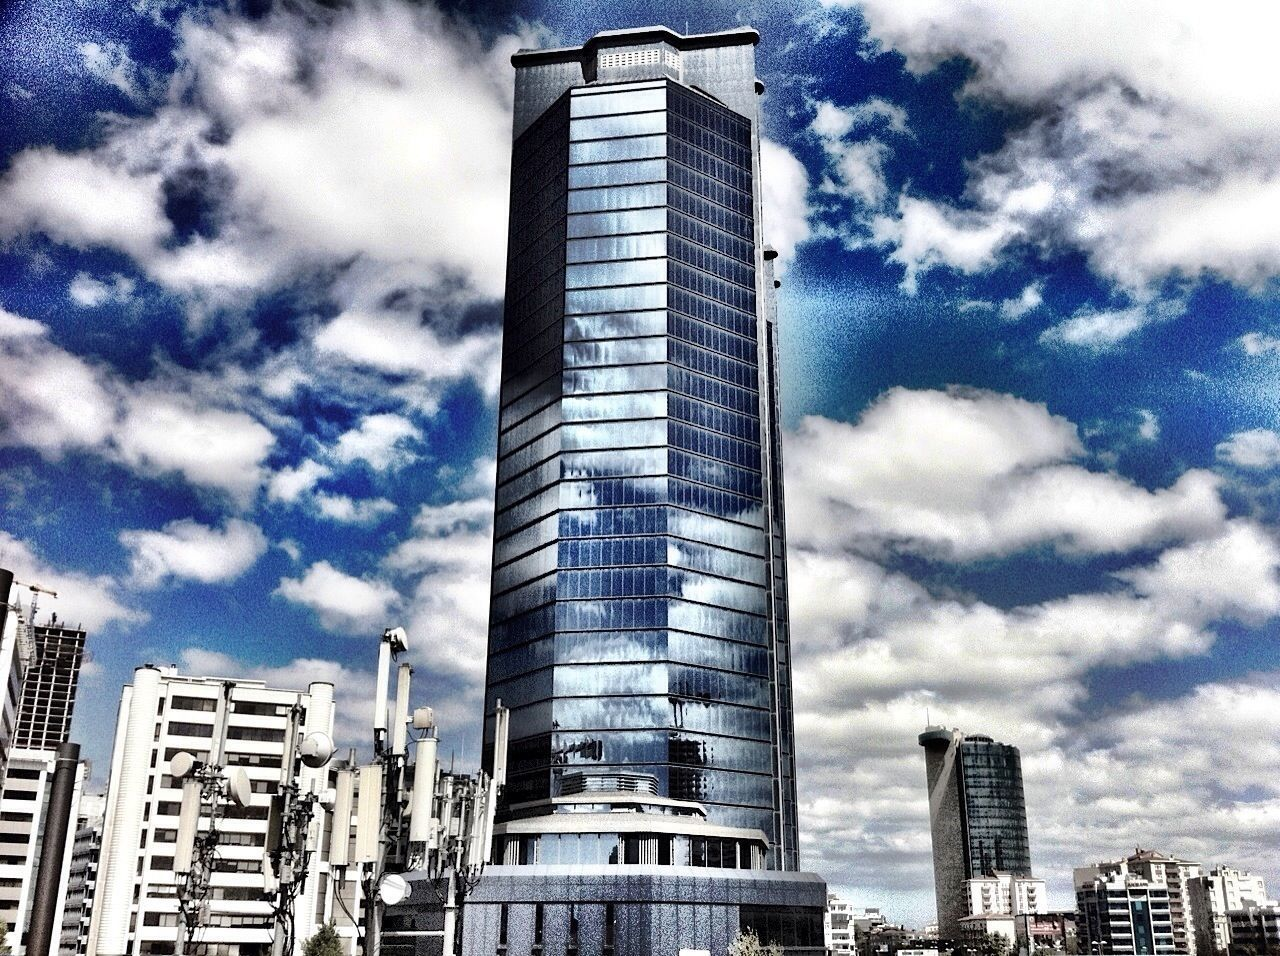 architecture, building exterior, skyscraper, built structure, tall - high, city, modern, tower, office building, sky, day, low angle view, tall, outdoors, downtown district, financial district, skyline, cloud - sky, city life, travel destinations, building story, no people, cityscape, urban skyline, office park